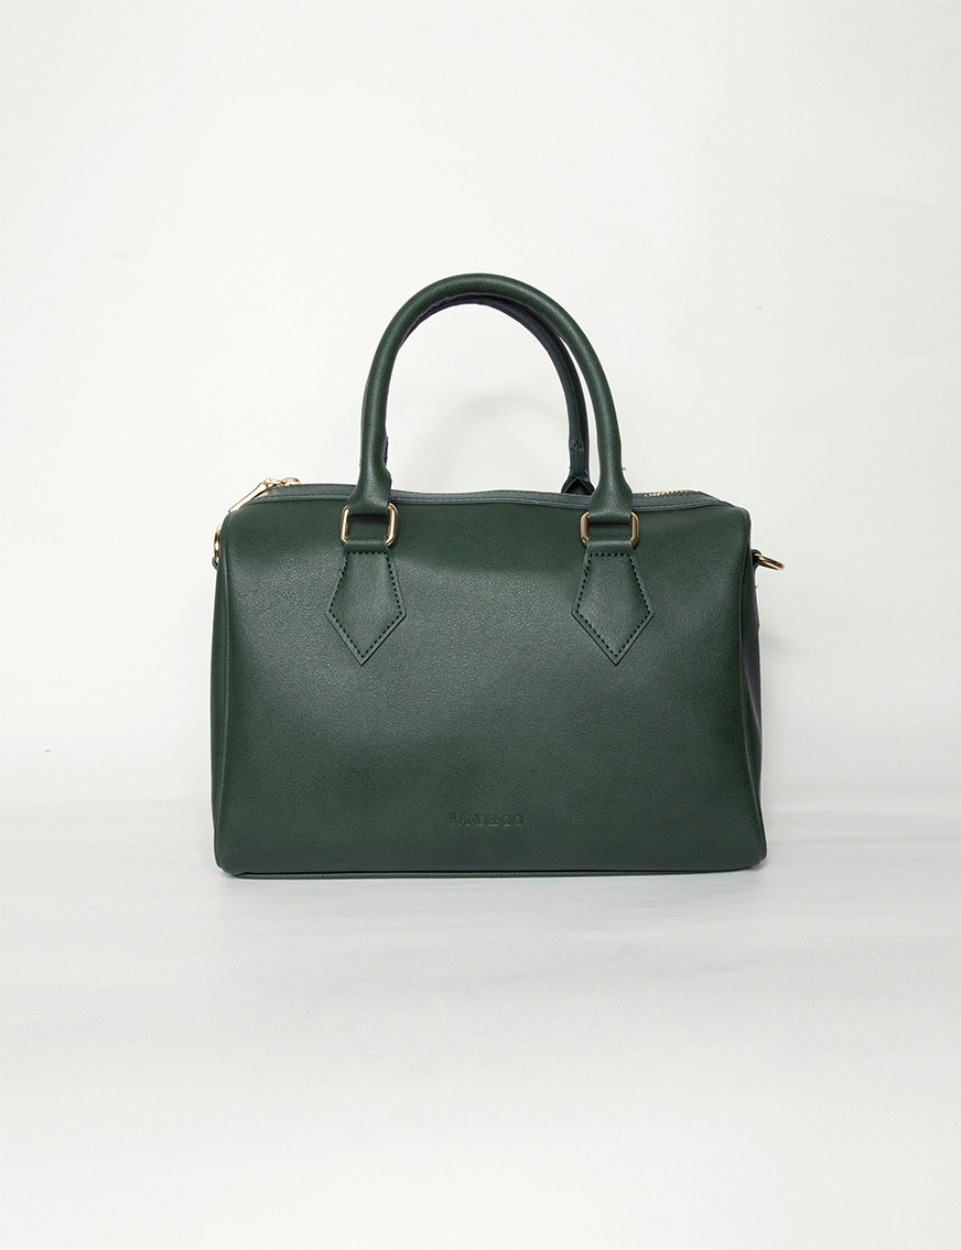 【PRE】RB boston bag (deep teal green)